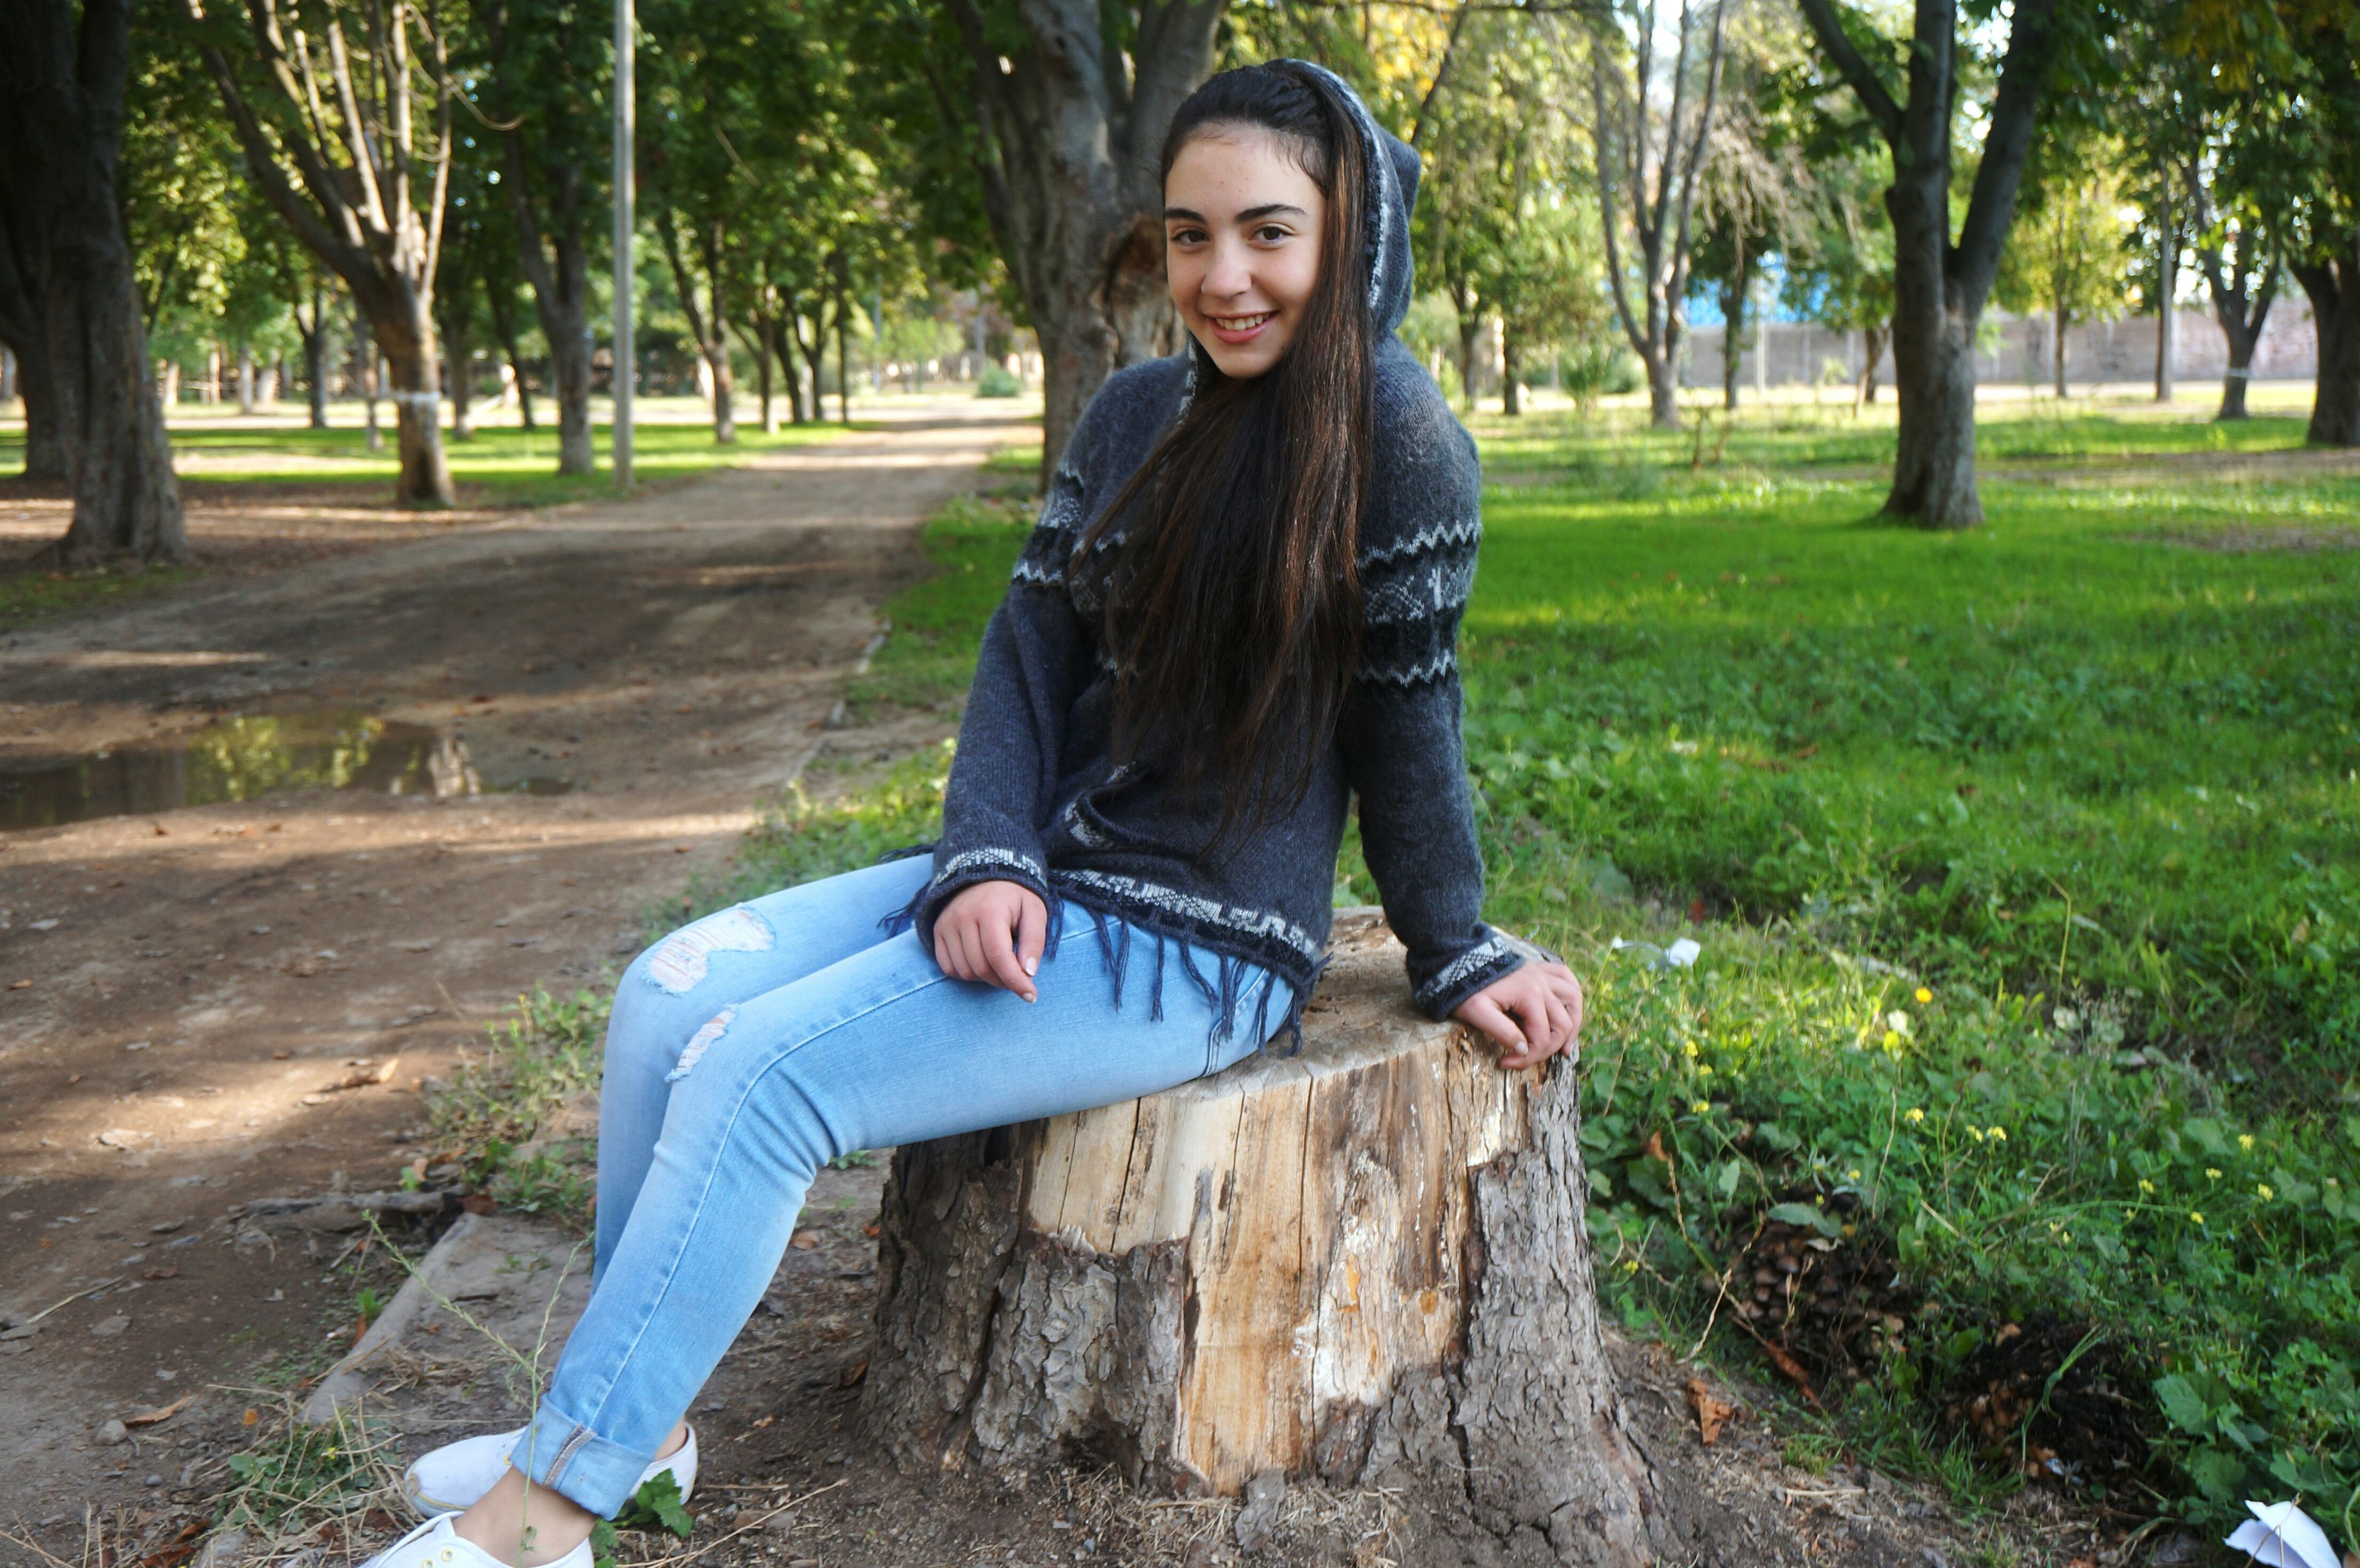 young adult, person, looking at camera, portrait, front view, casual clothing, tree, lifestyles, young women, leisure activity, smiling, standing, long hair, happiness, confidence, full length, three quarter length